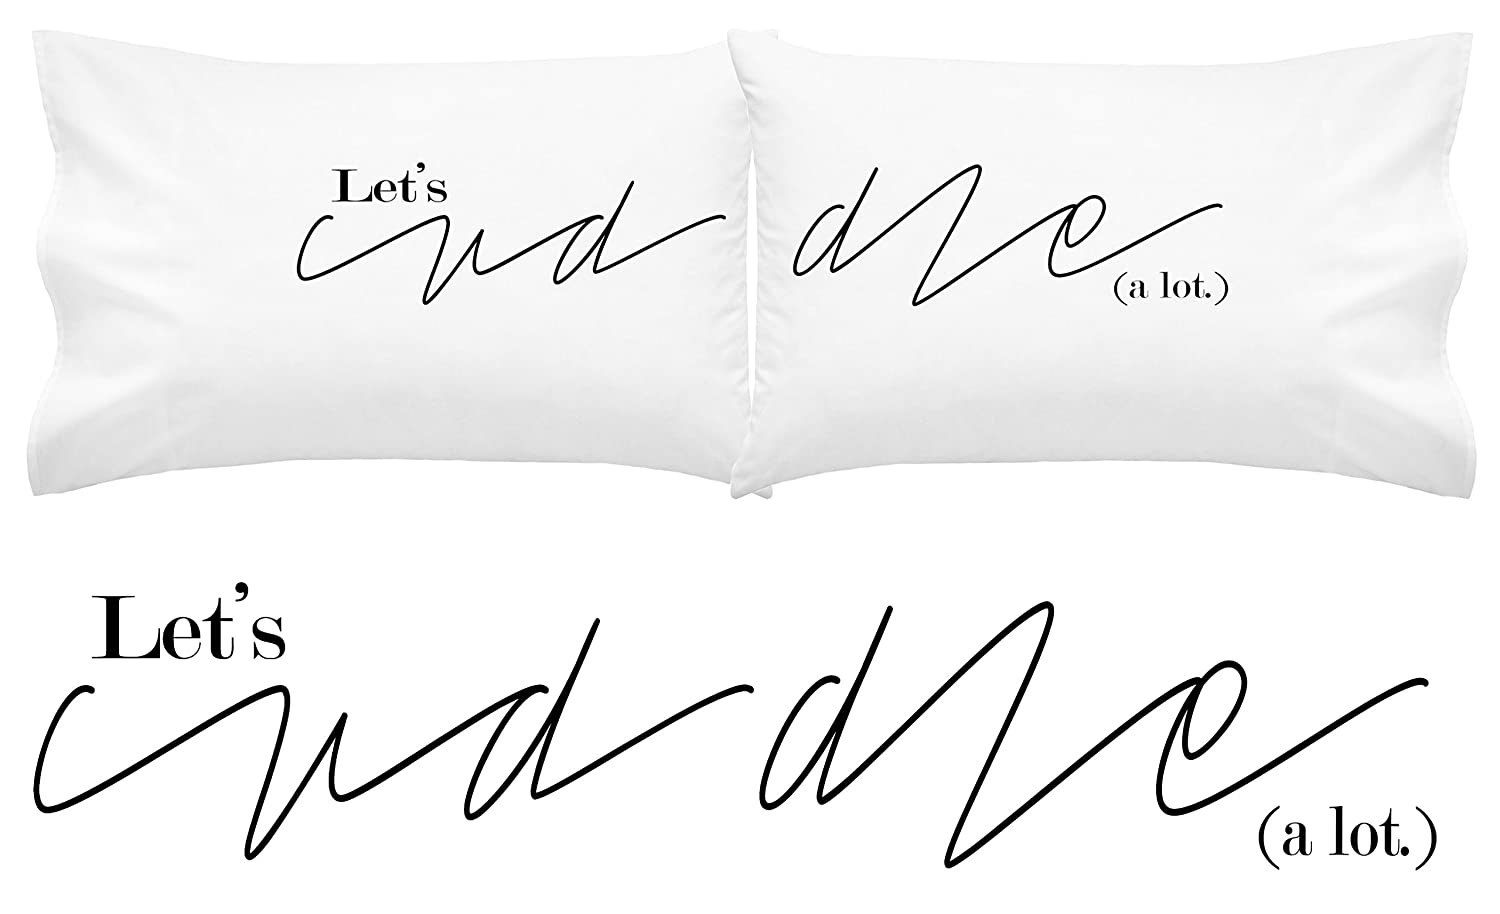 Amazon oh susannah lets cuddle pillow cases his and hers amazon oh susannah lets cuddle pillow cases his and hers couples pillow cases two 20x30 standard size pillowcases mrs and mr long distance gifts biocorpaavc Gallery